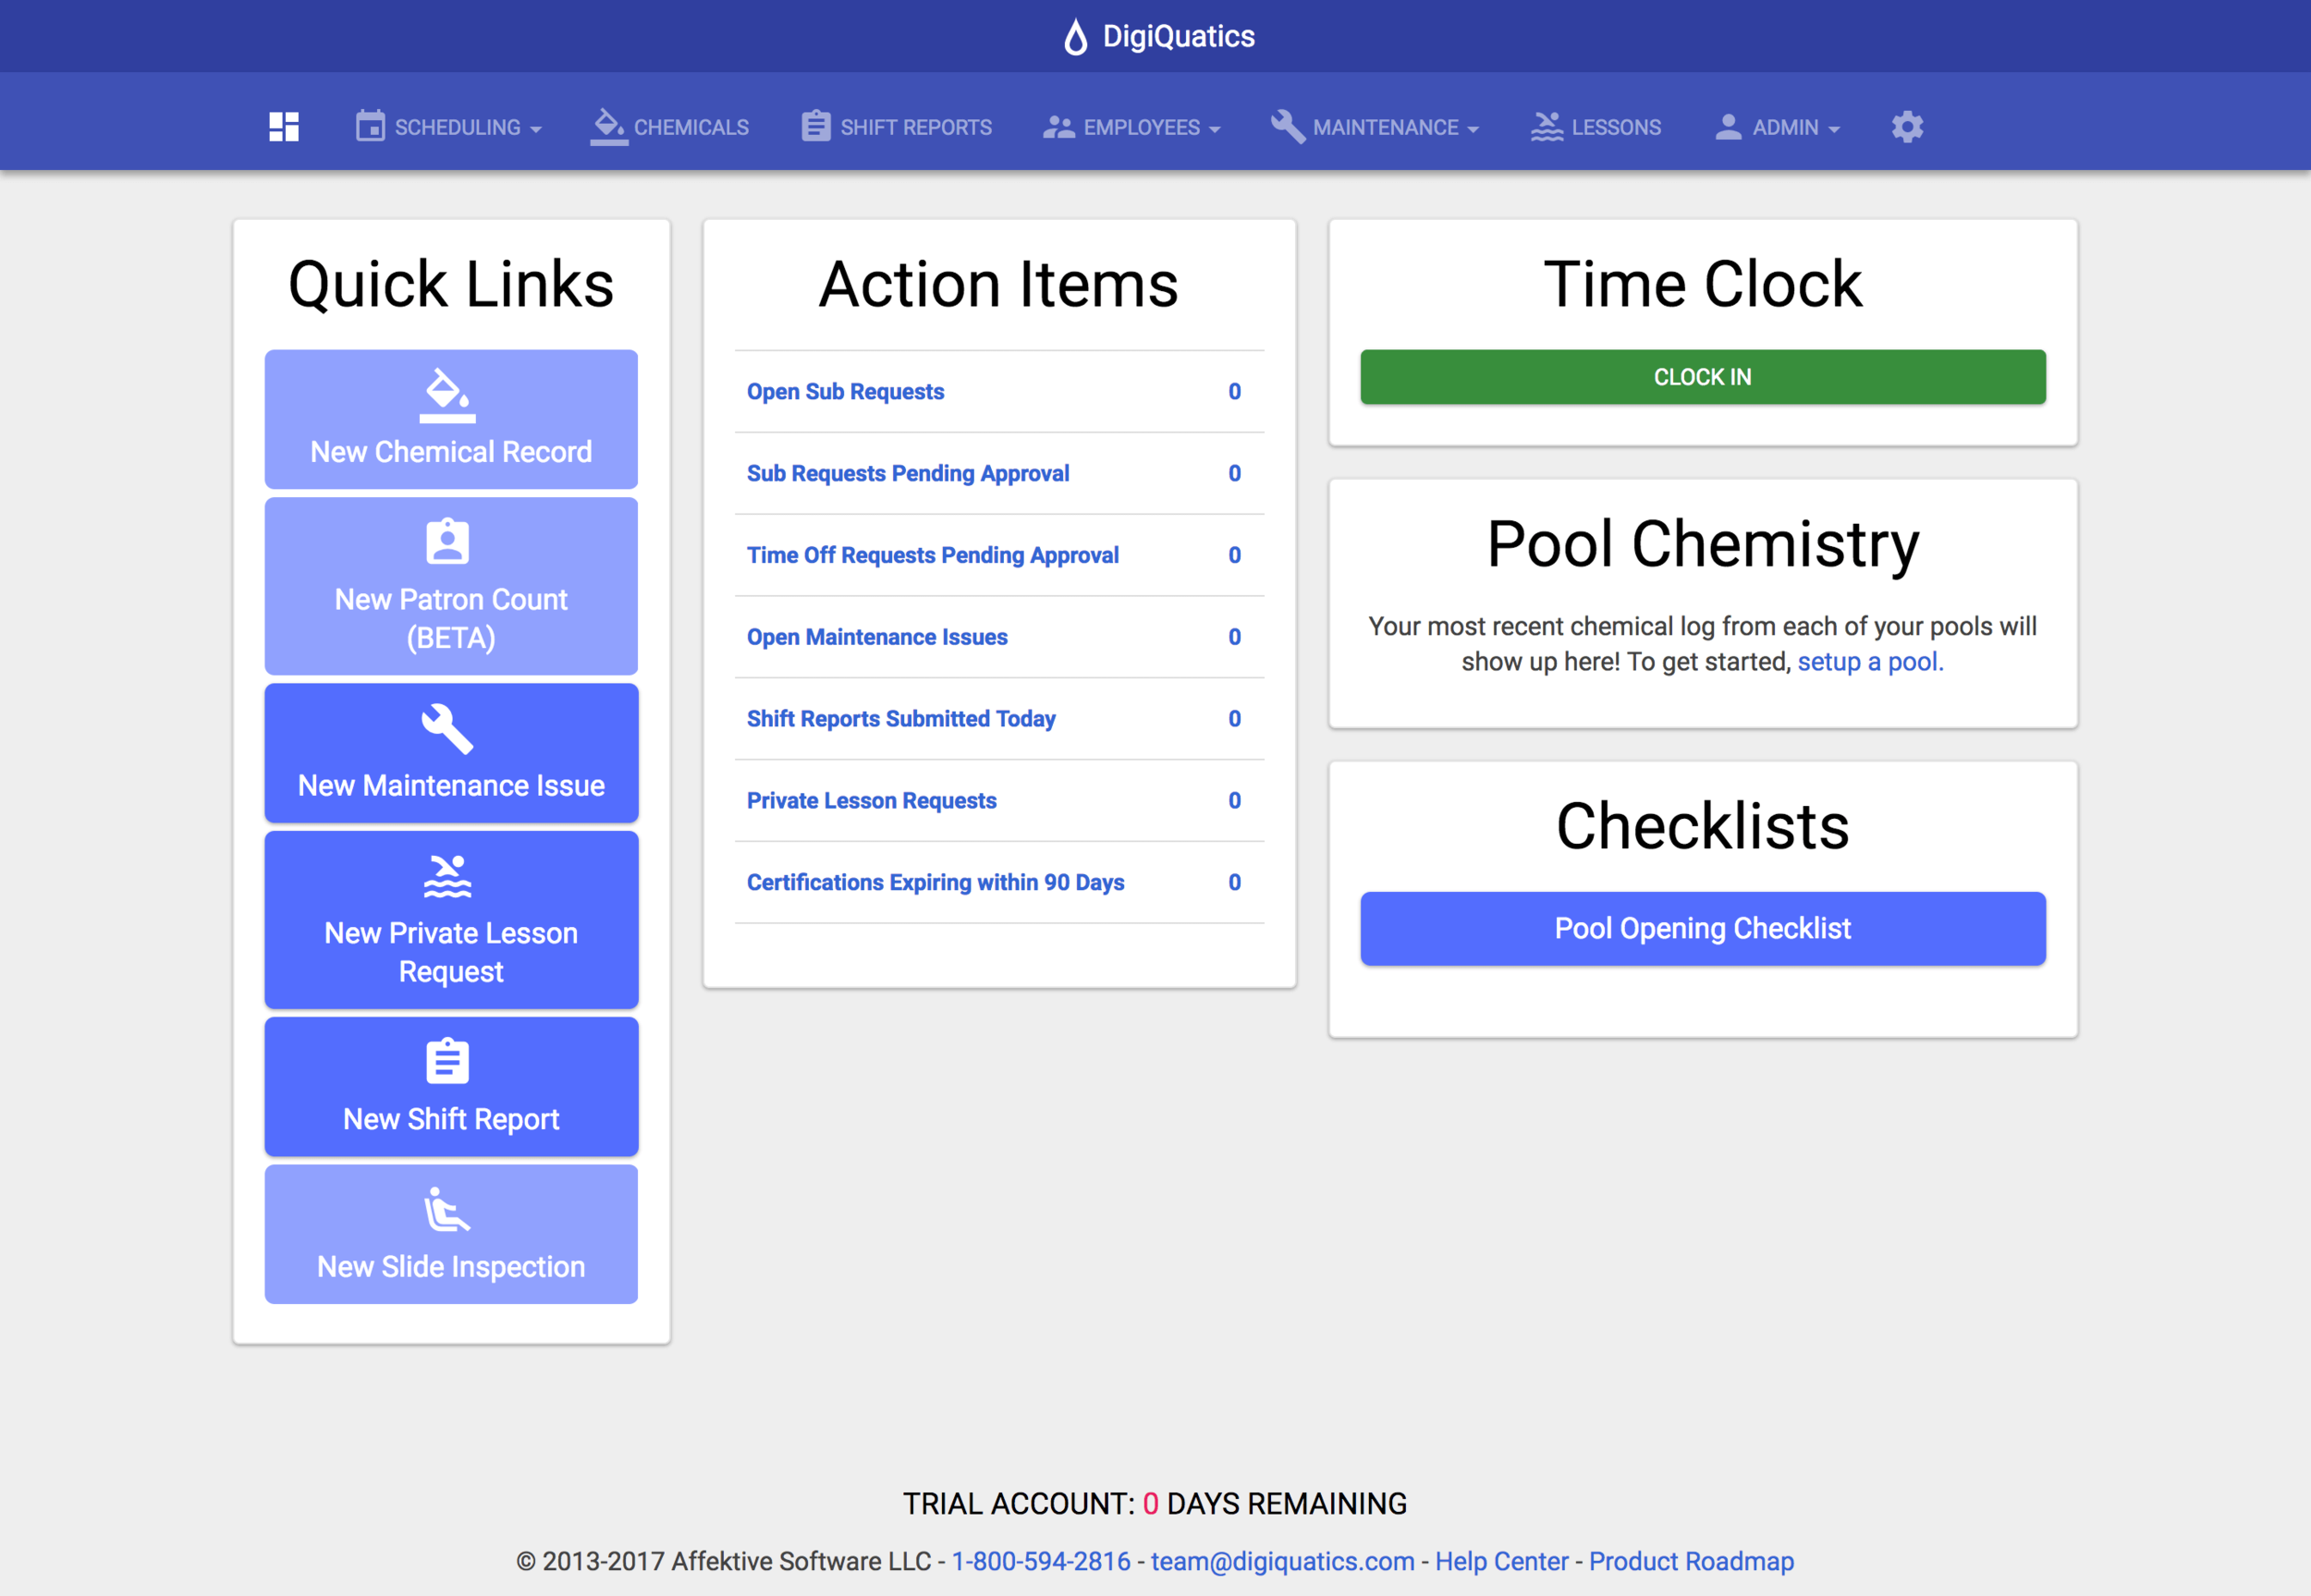 digiquatics_dashboard_with_checklists.png